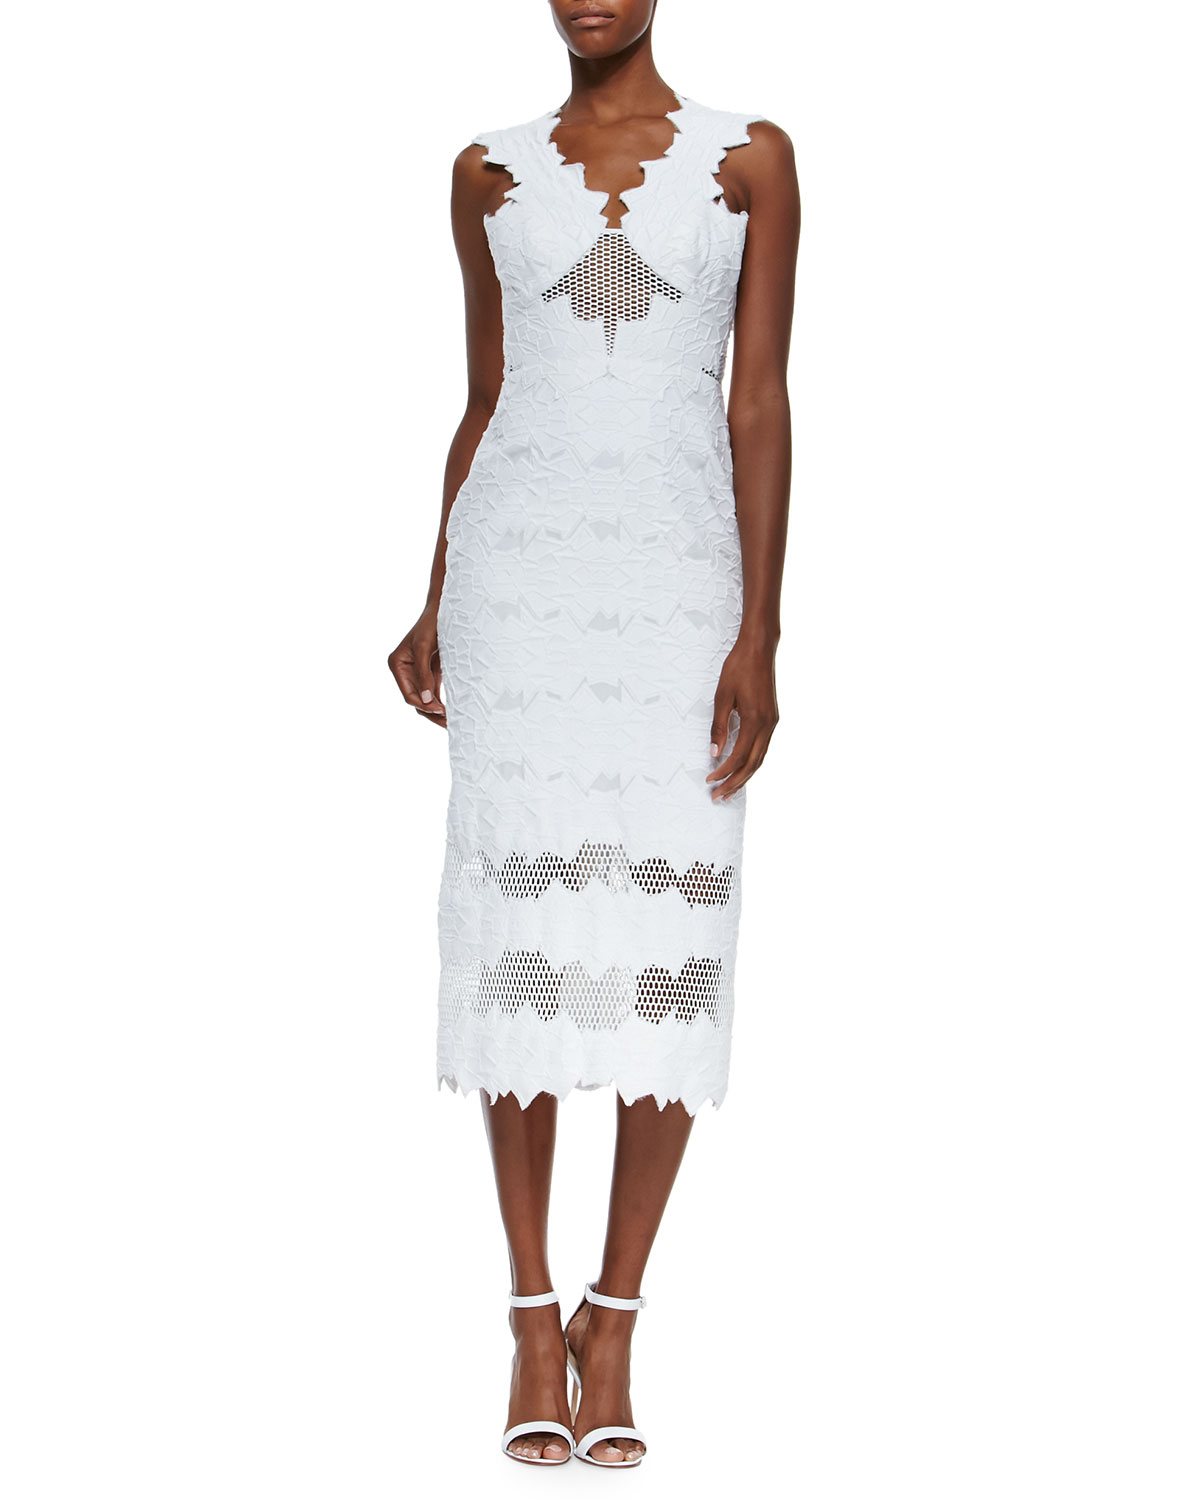 Jonathan Simkhai Burnout Brocade Dress - White